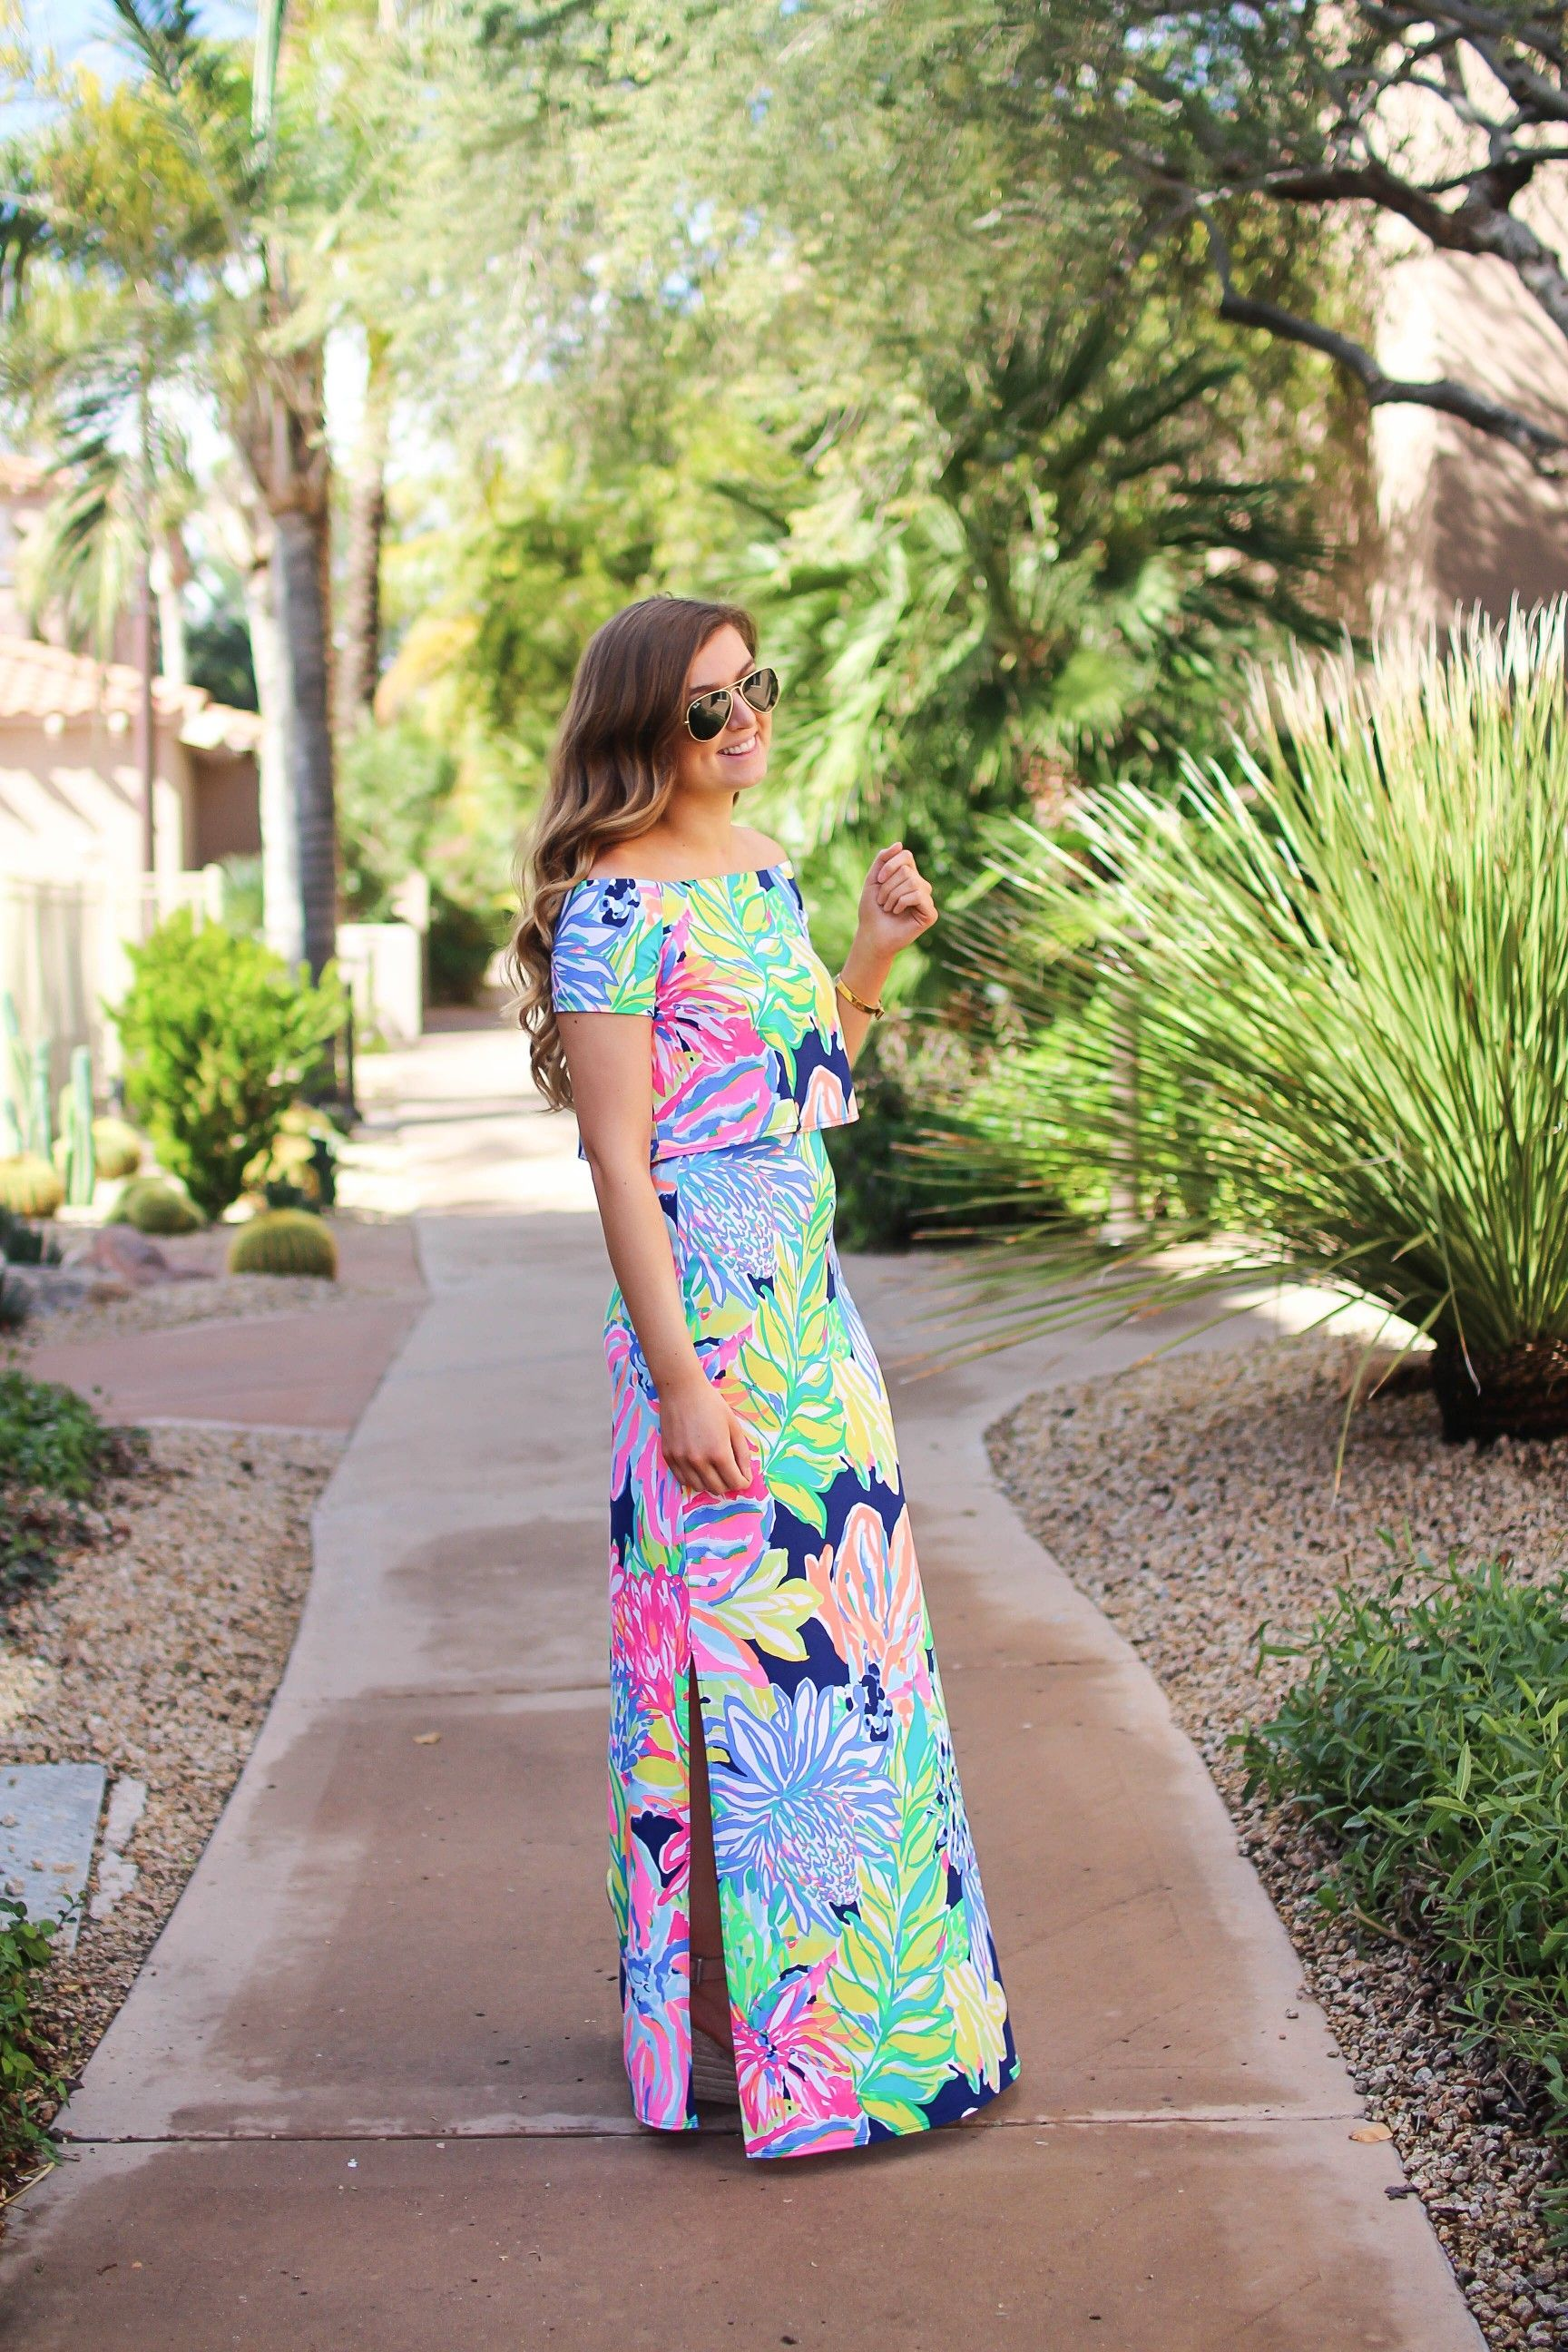 cbf0e736f7e3e2 Lilly Pulitzer two piece maxi dress in Navy Travelers Palm. I love  everything in the Resort Wear 365 collection this year! I paired this maxi  dress with my ...